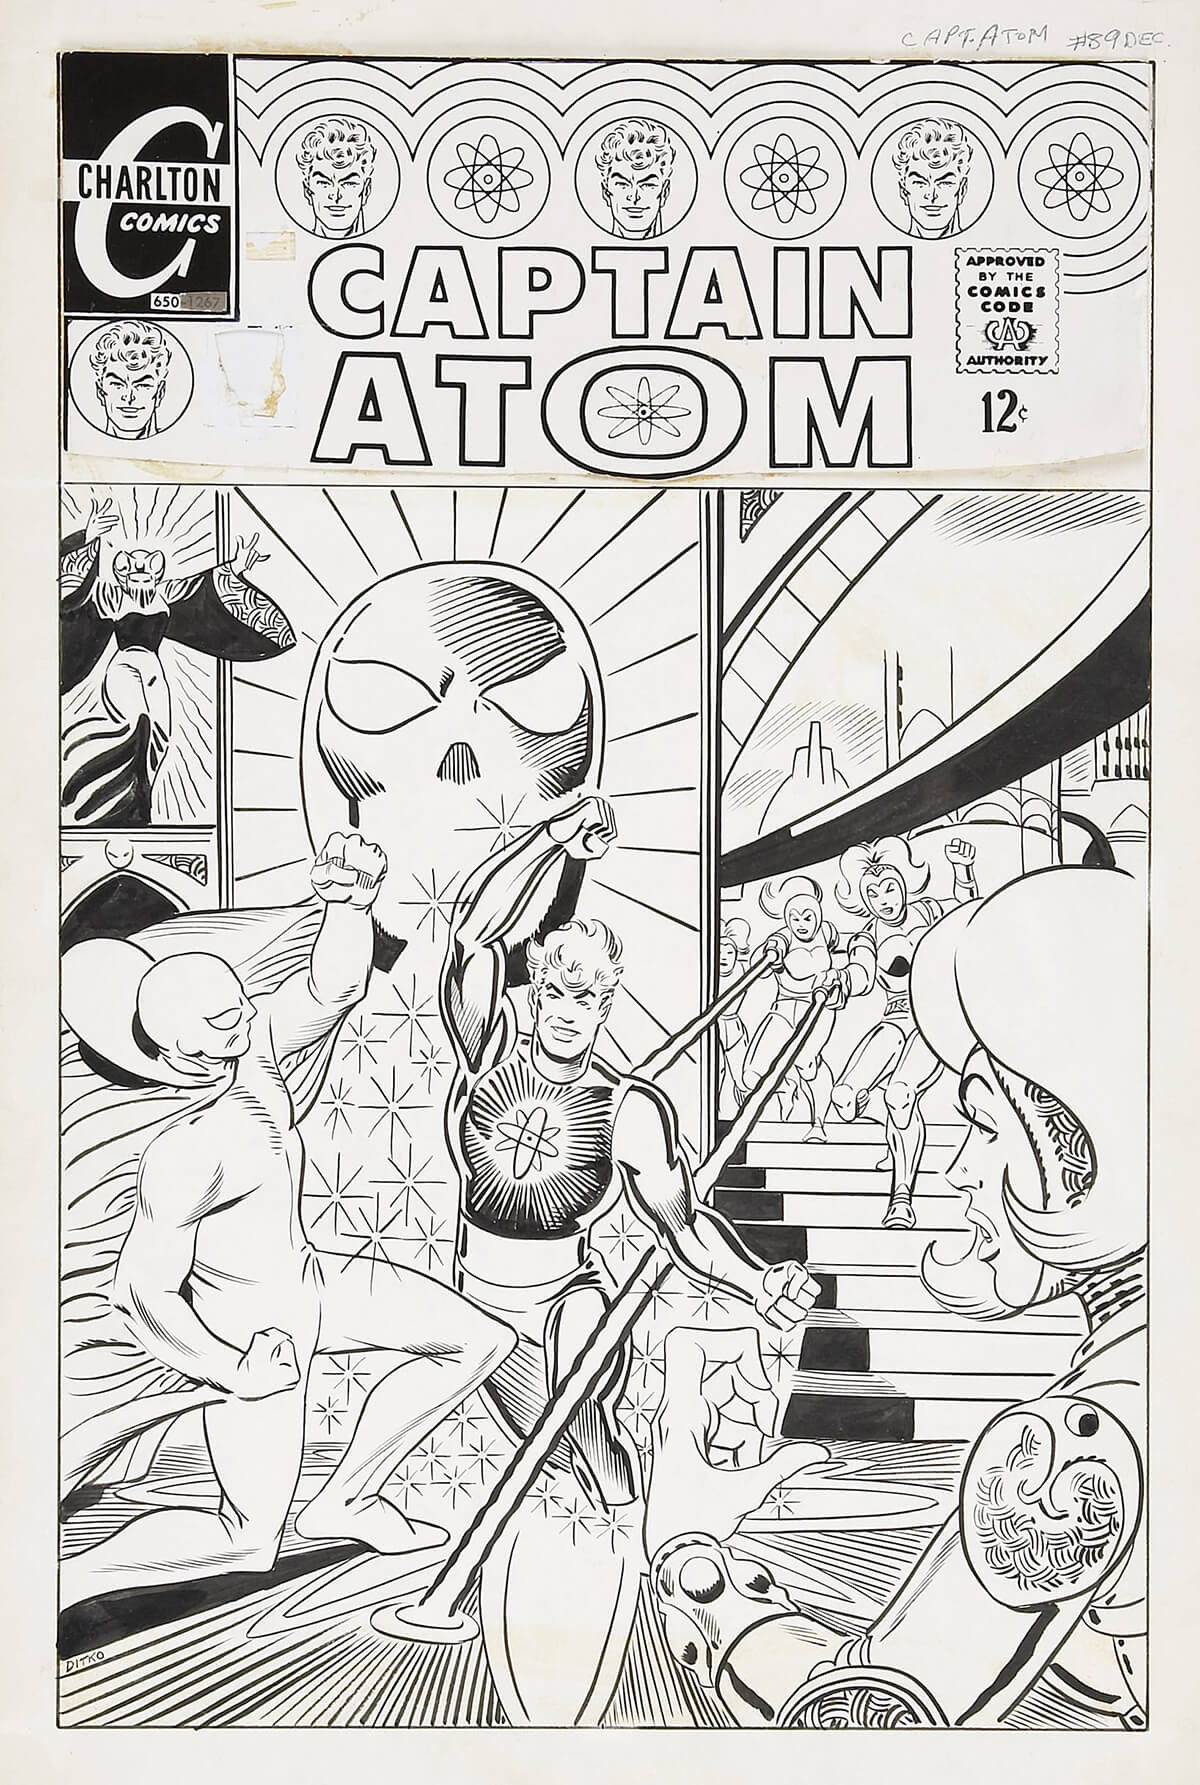 Captain Atom 90 Cover by Steve Ditko